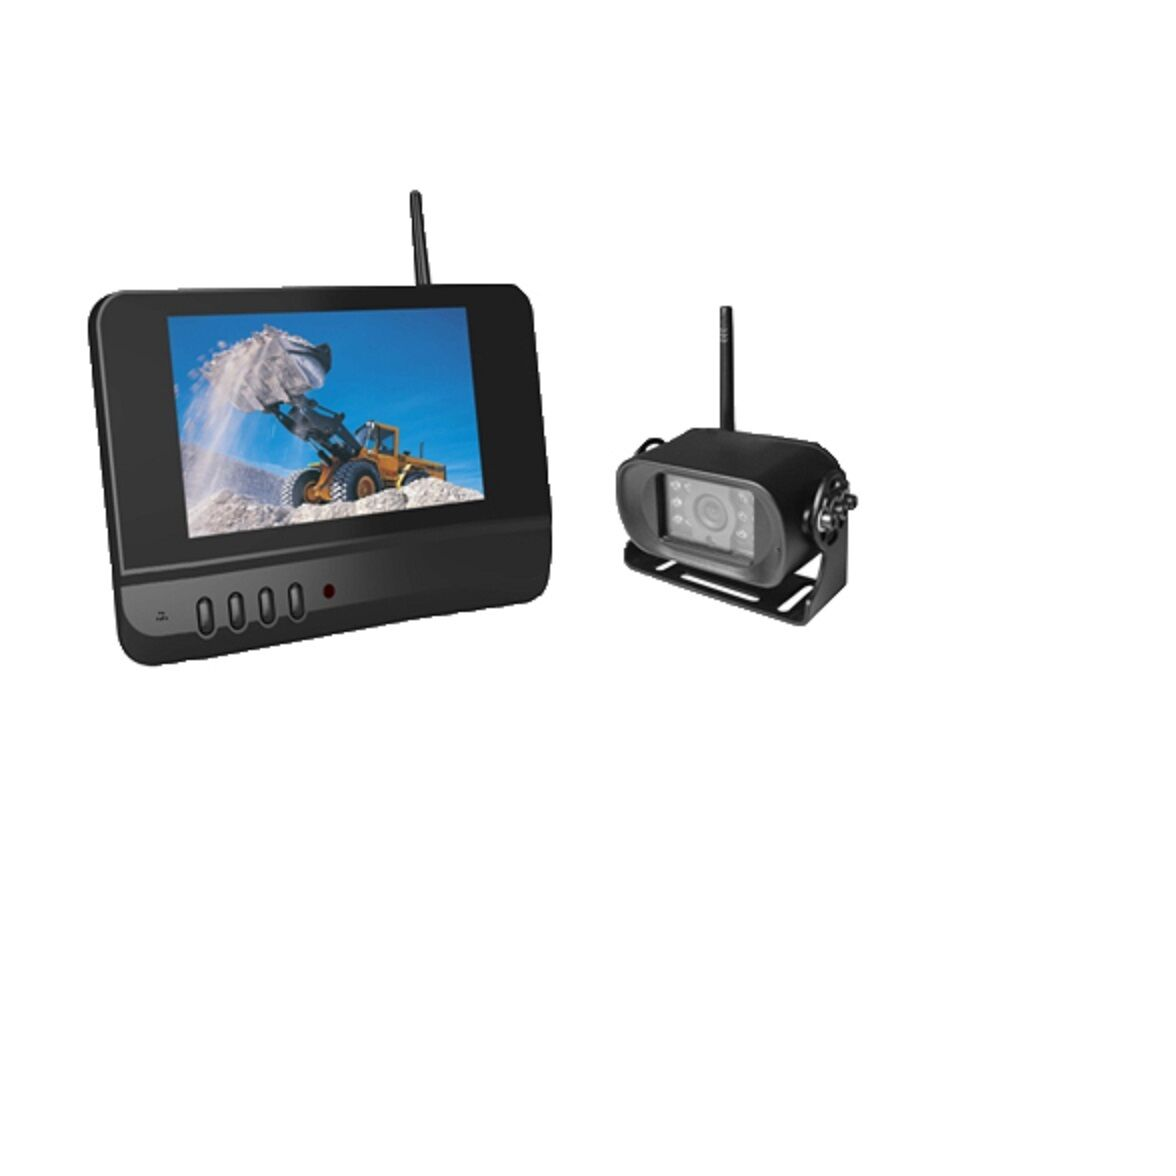 Skid Steer KTH 2.4 Digital Wireless rear view Camera System with 7